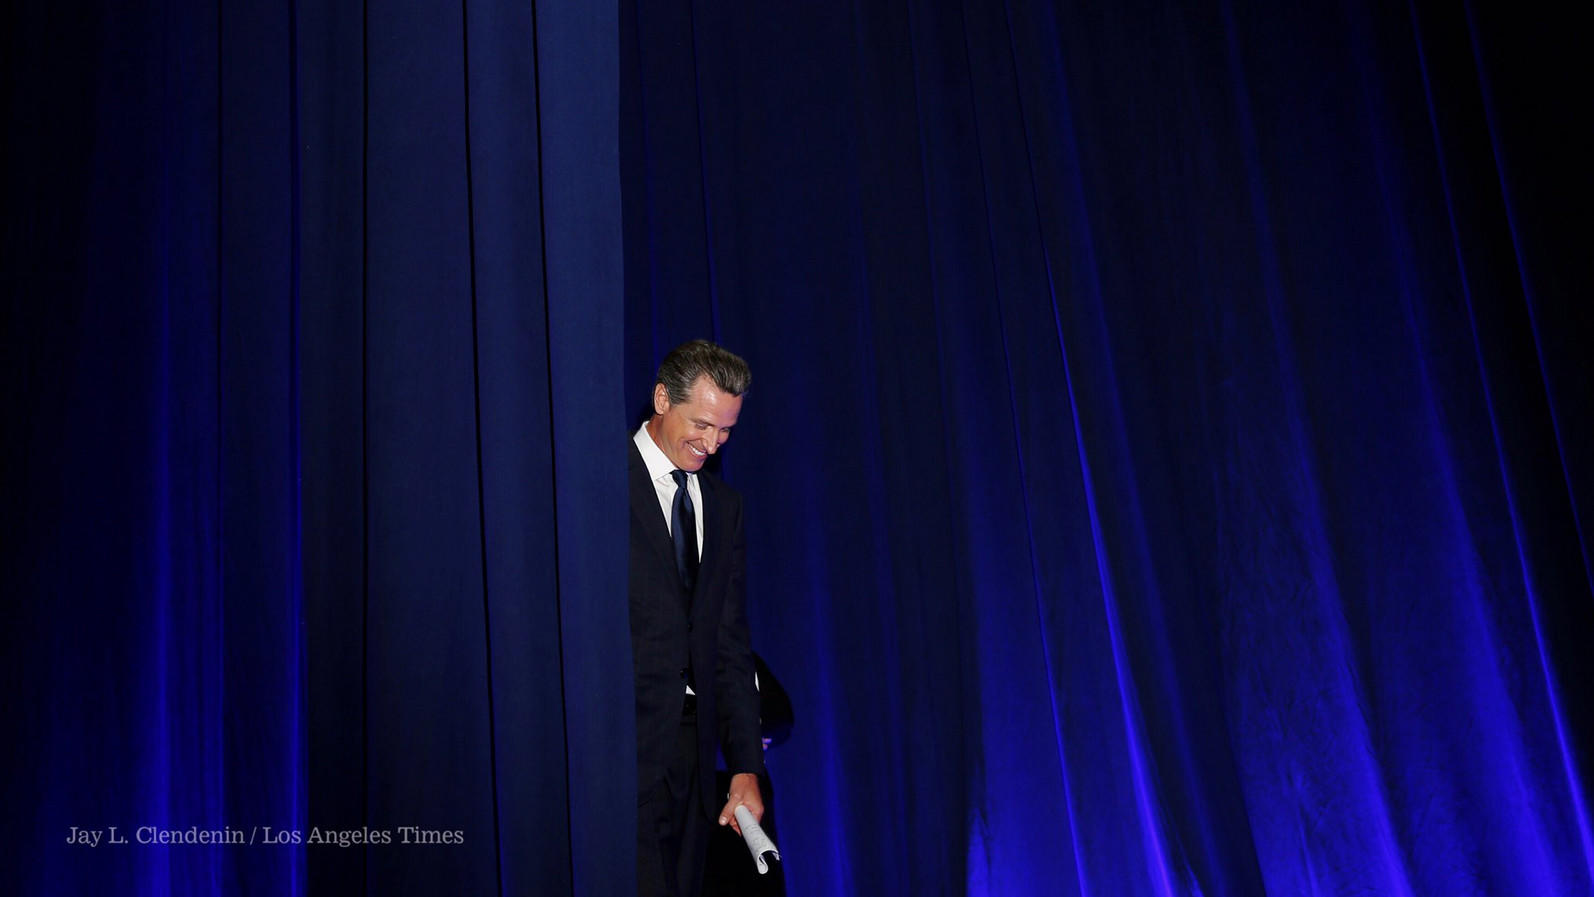 Gavin Newsom speaks at the California Democratic Party convention in Sacramento (Jay L. Clendenin/Los Angeles Times)